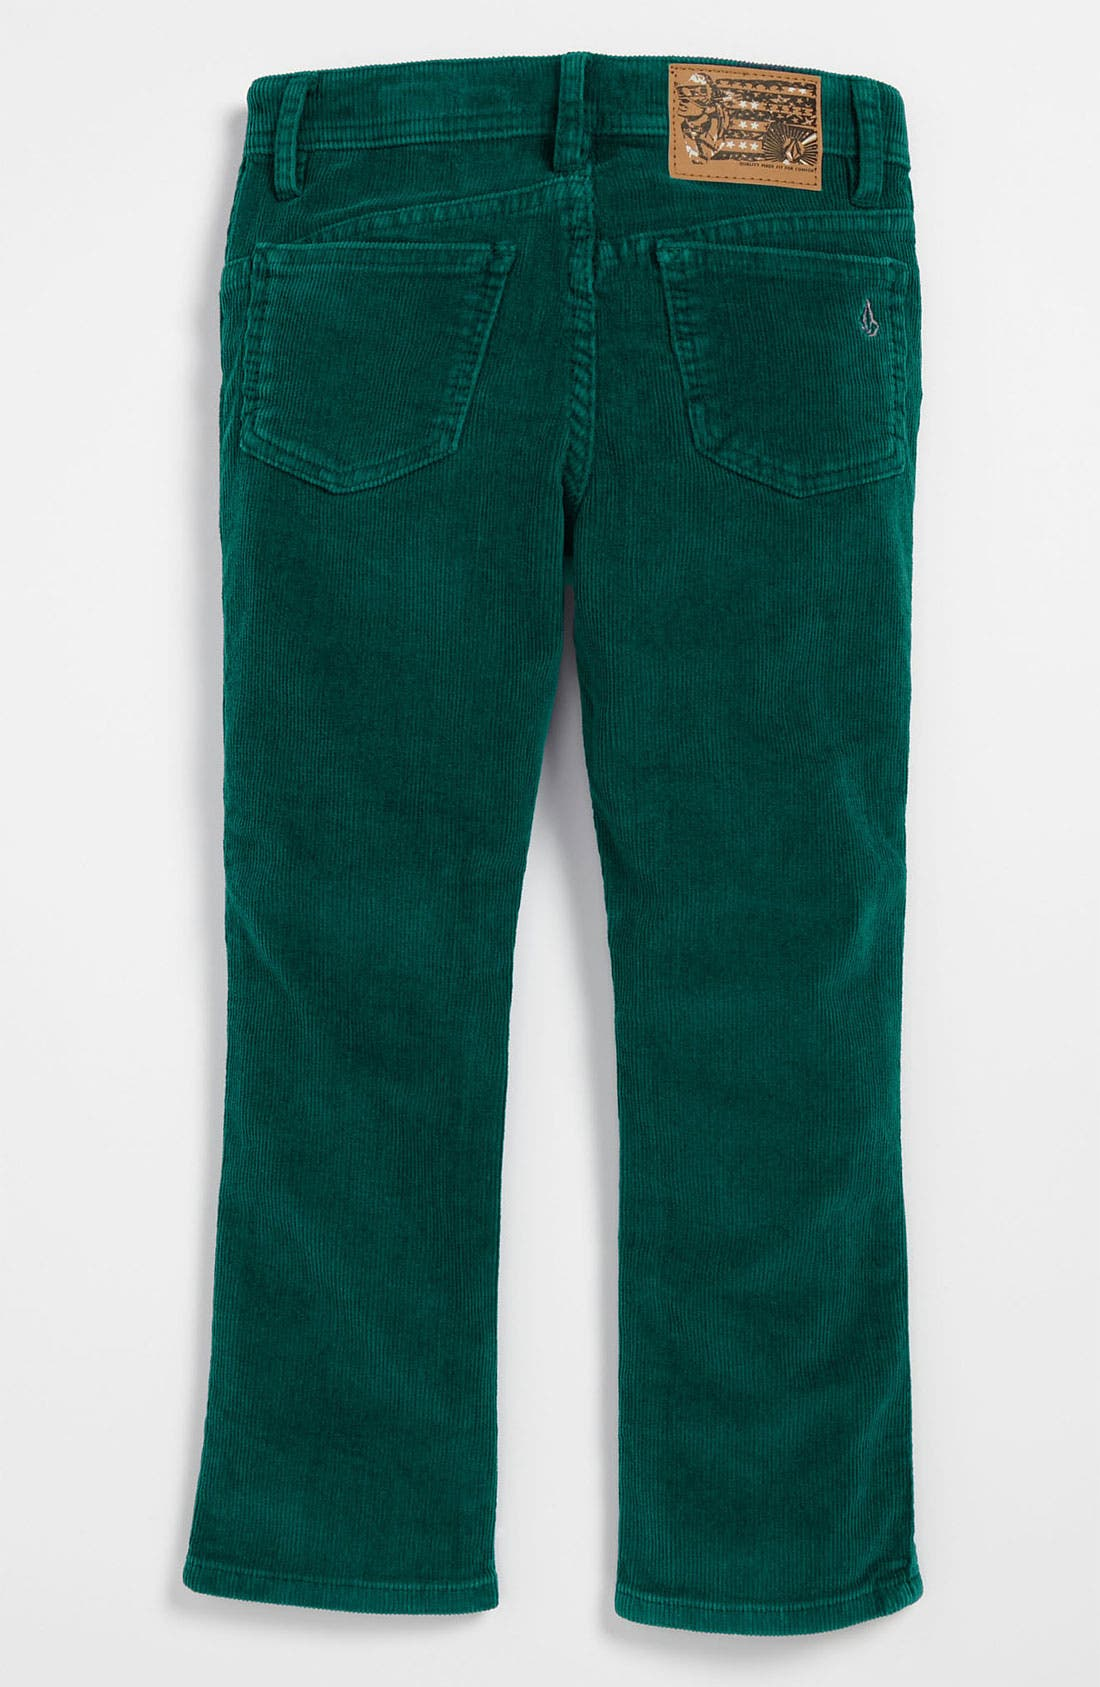 Alternate Image 1 Selected - Volcom Corduroy Pants (Big Boys)